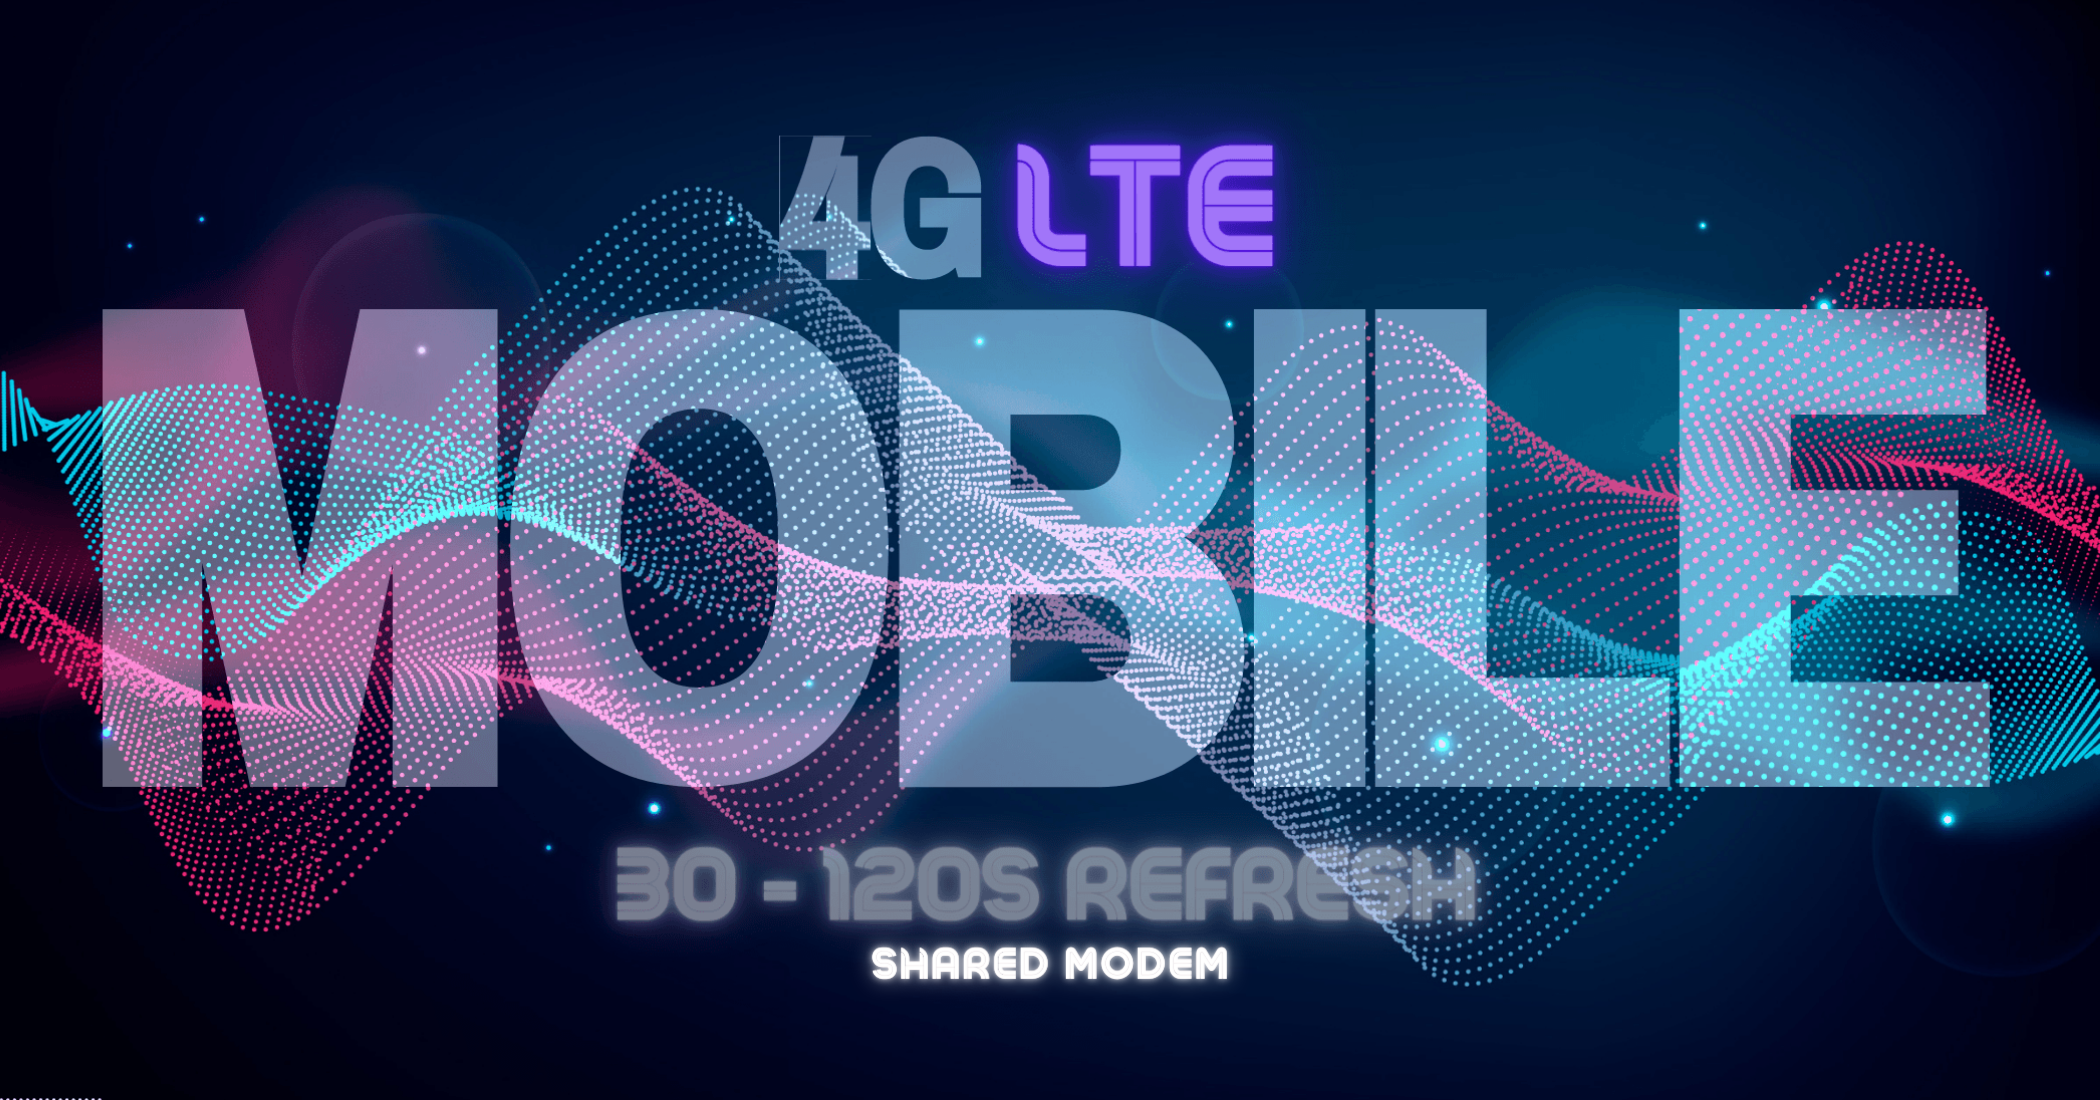 Shared - 4G LTE Mobile Proxy - 30-120 Second Refresh - AUTO DELIVERY - GREAT FOR SEO GLOBAL